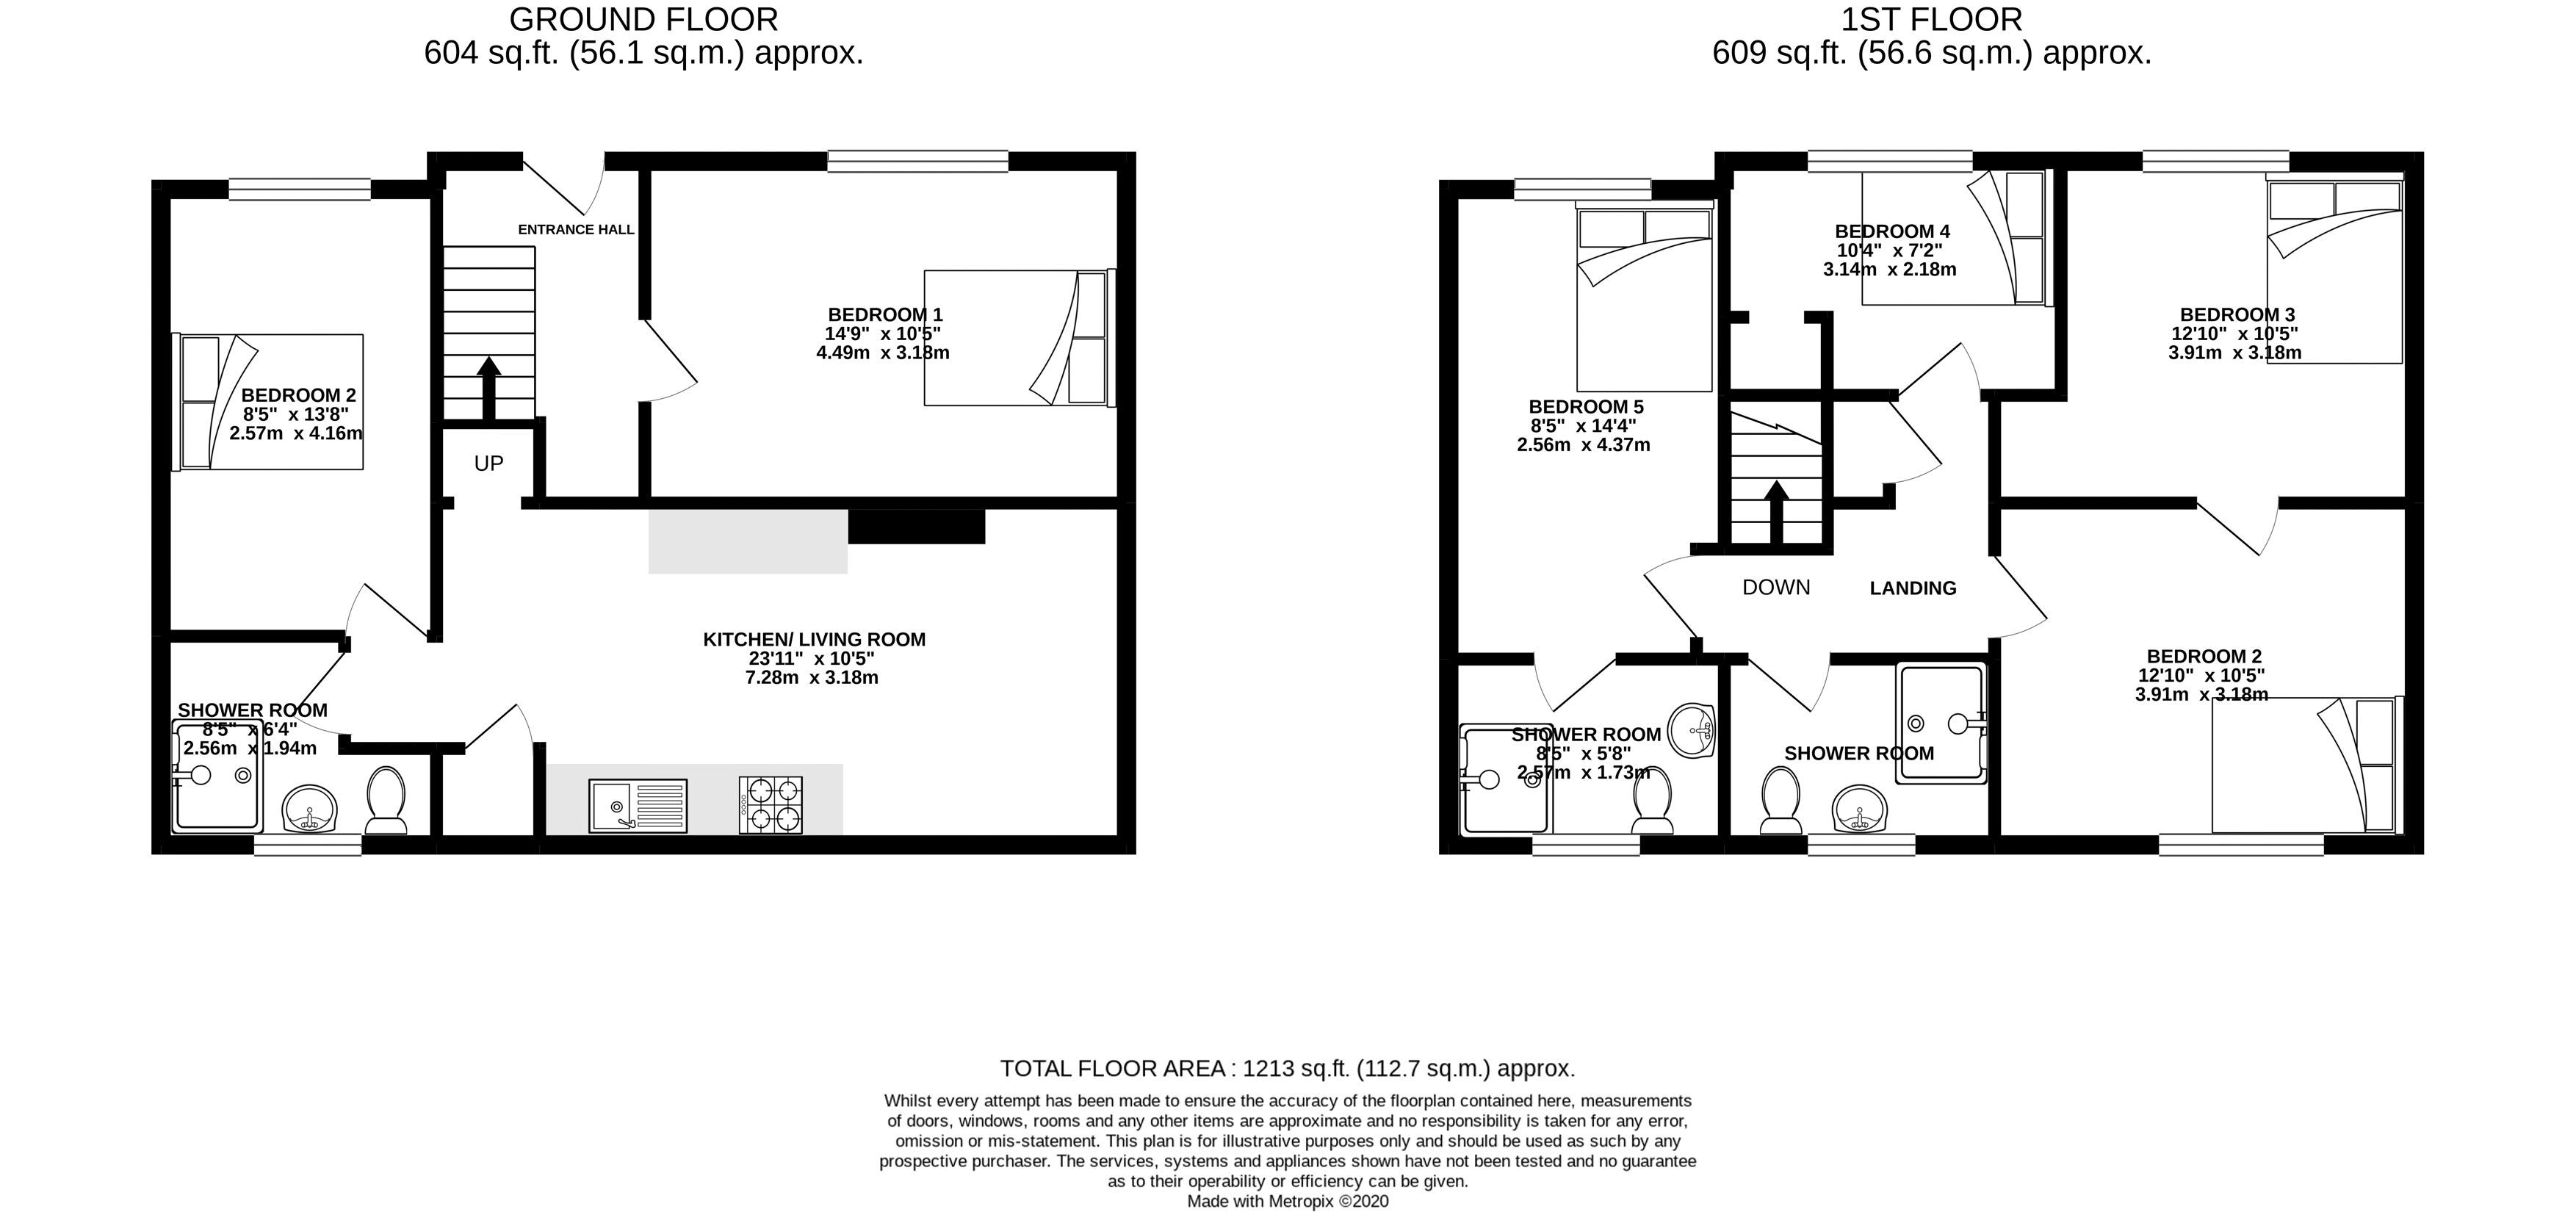 Floor plans for Ewhurst Road, Brighton property for sale in Coombe Road, Brighton by Coapt